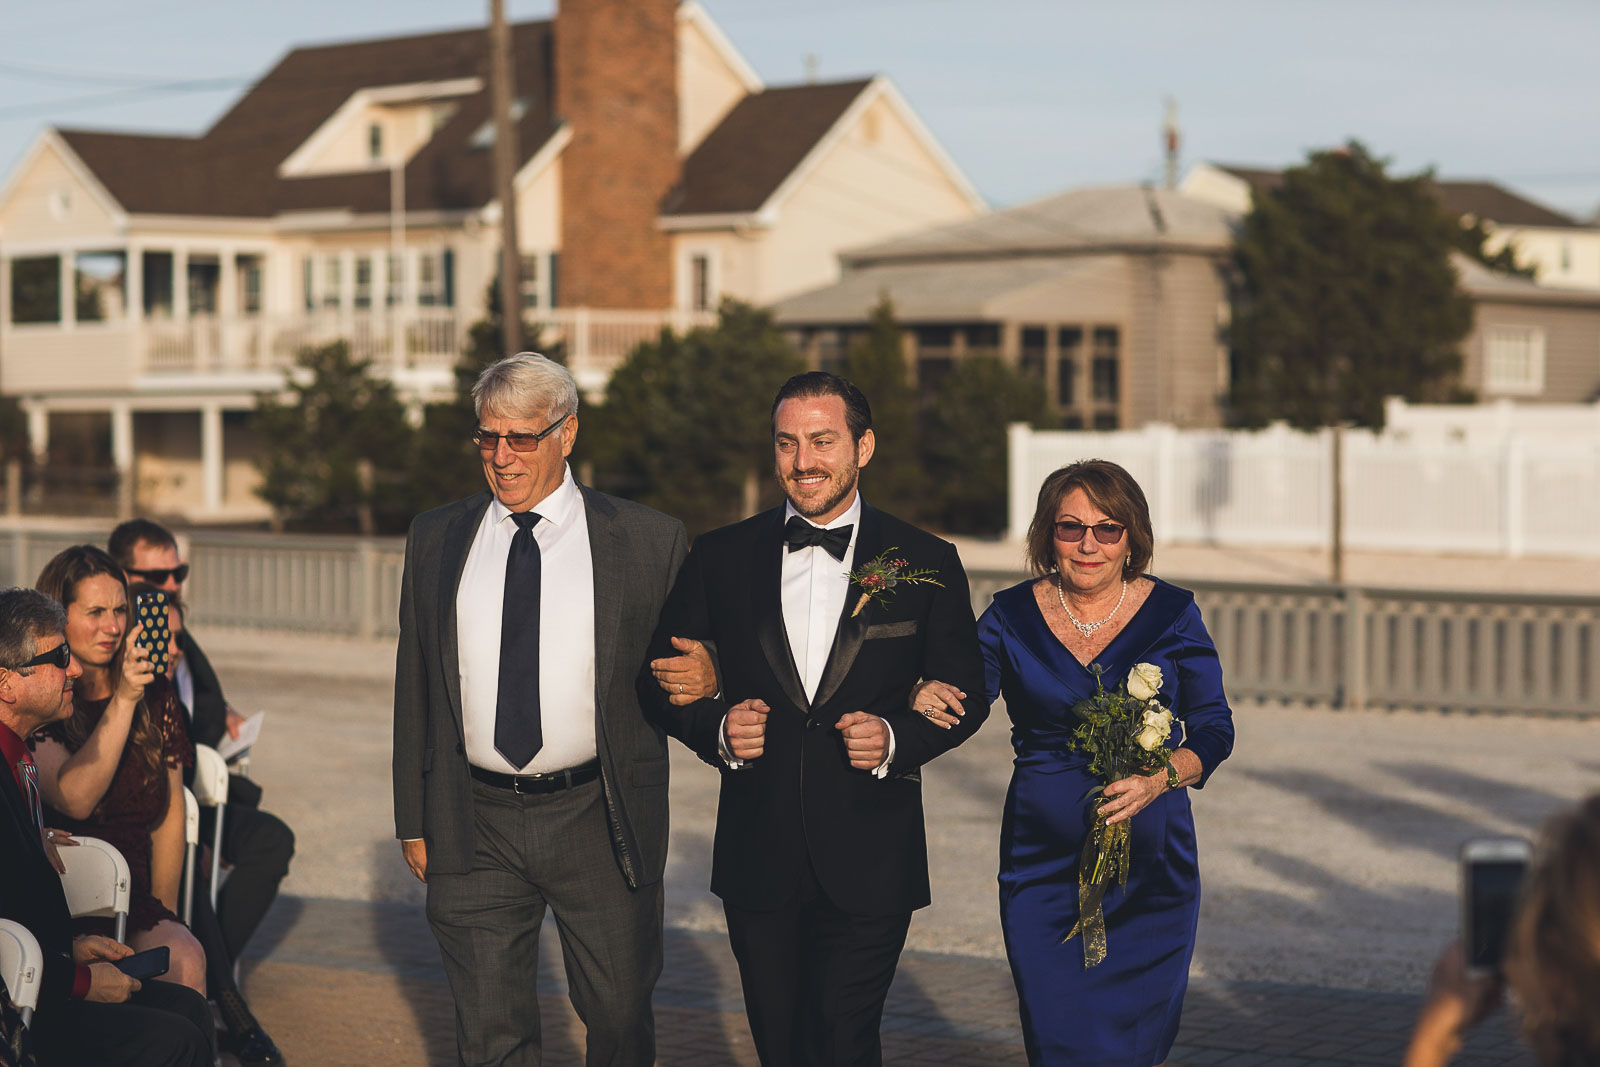 Parents walk Groom down aisle